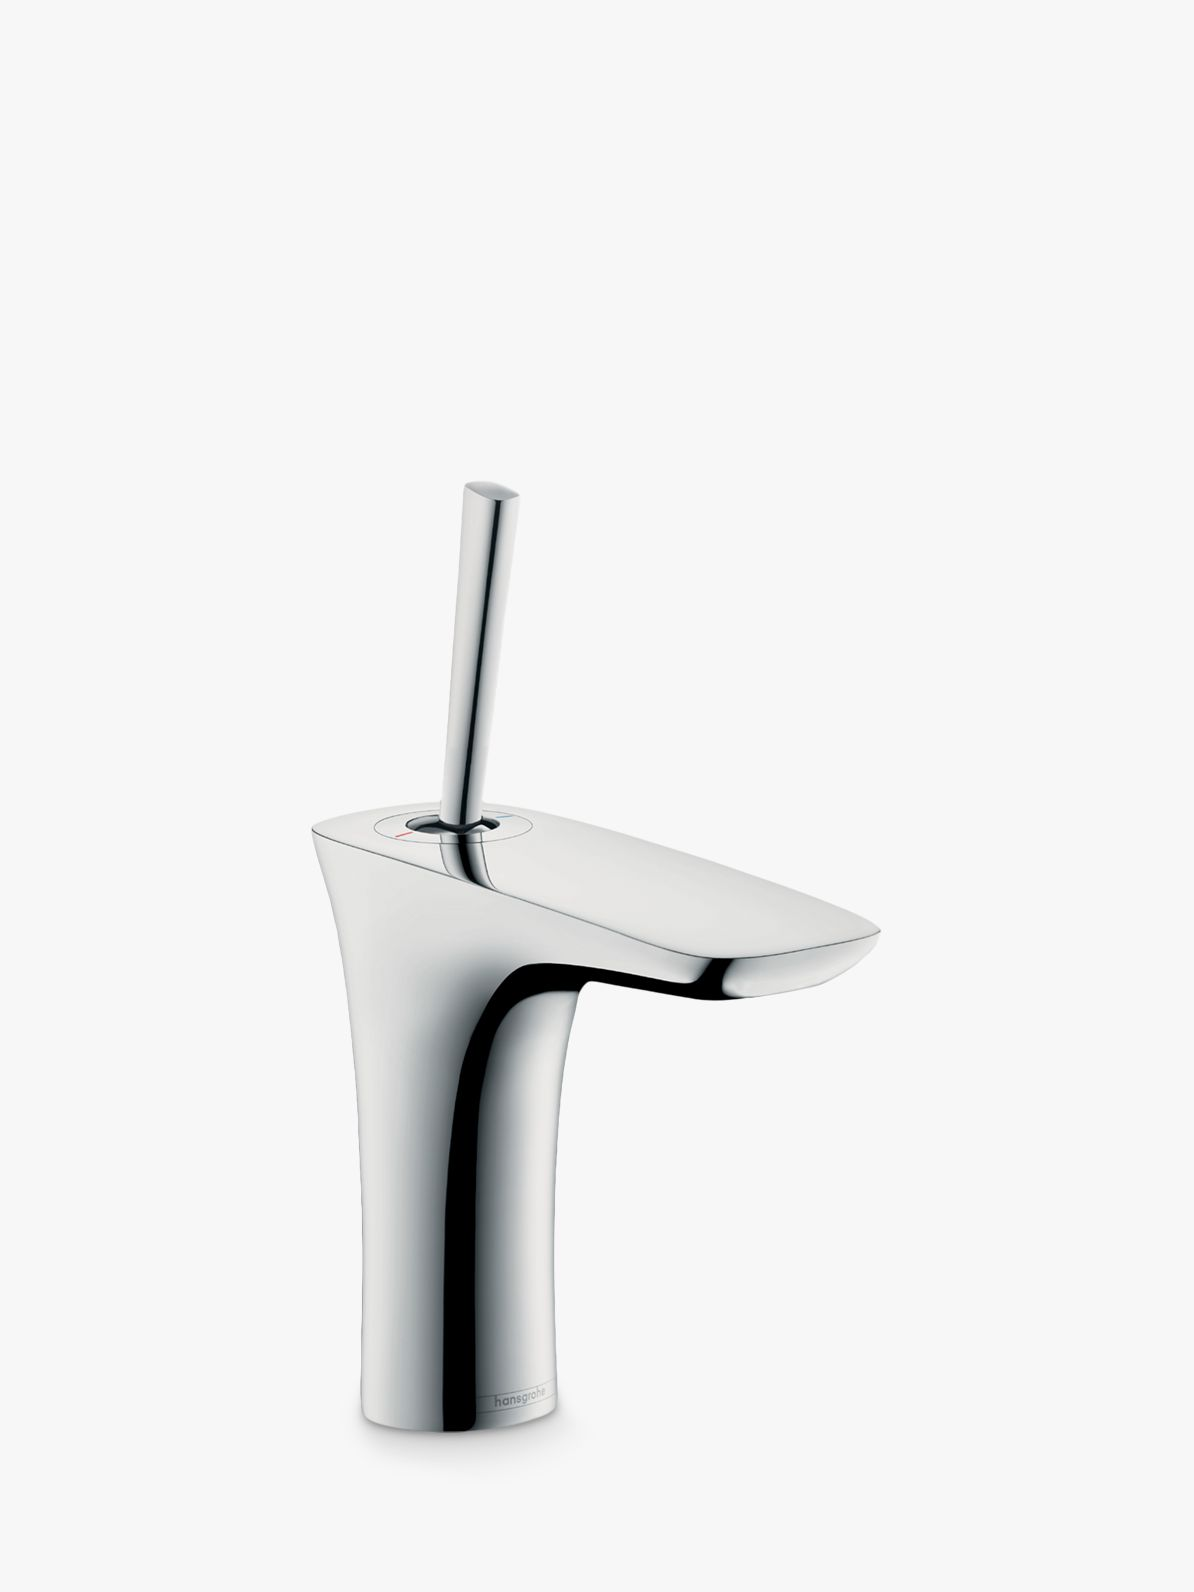 Hansgrohe Hansgrohe PuraVida 110 Single Lever Bathroom Mixer Tap, Chrome